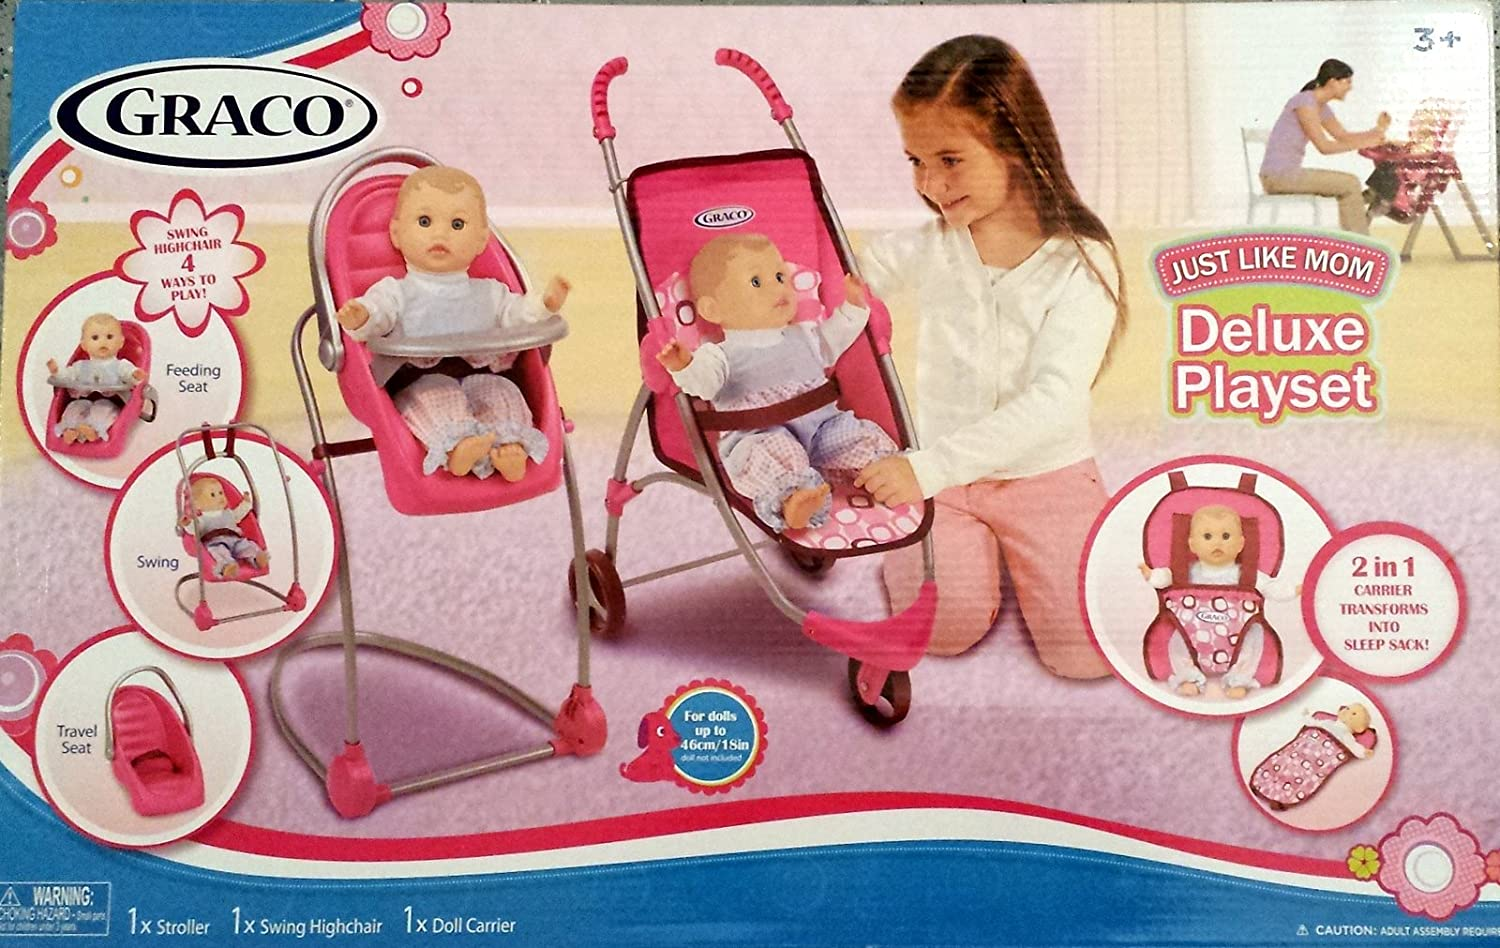 Graco Doll Carrier